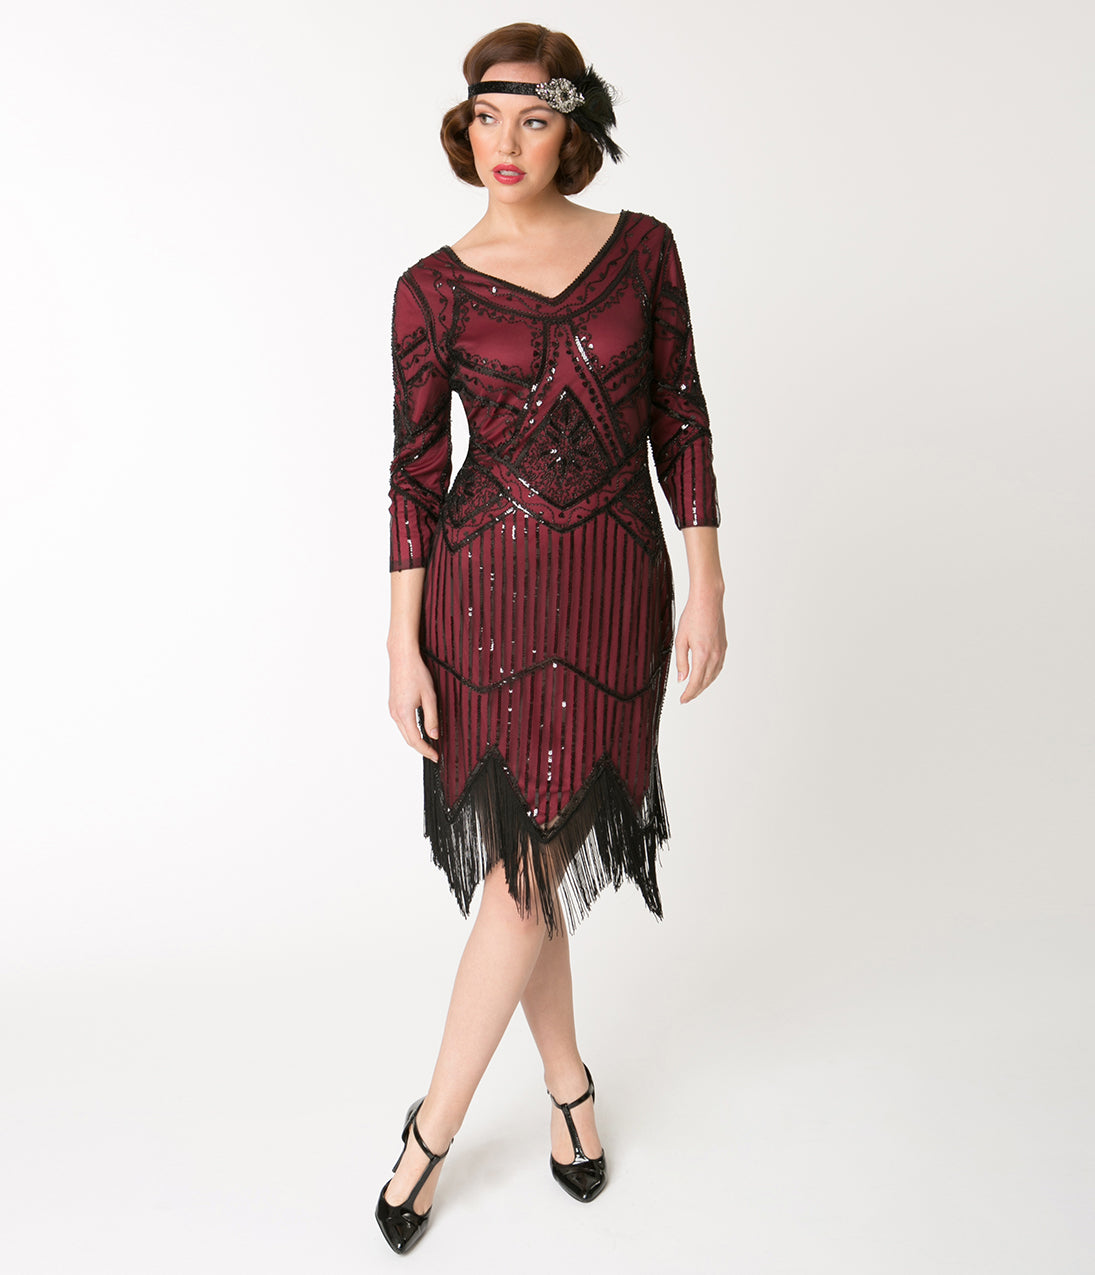 Vintage Christmas Gift Ideas for Women Unique Vintage 1920S Burgundy Beaded Sleeved Noemie Fringe Flapper Dress $63.00 AT vintagedancer.com